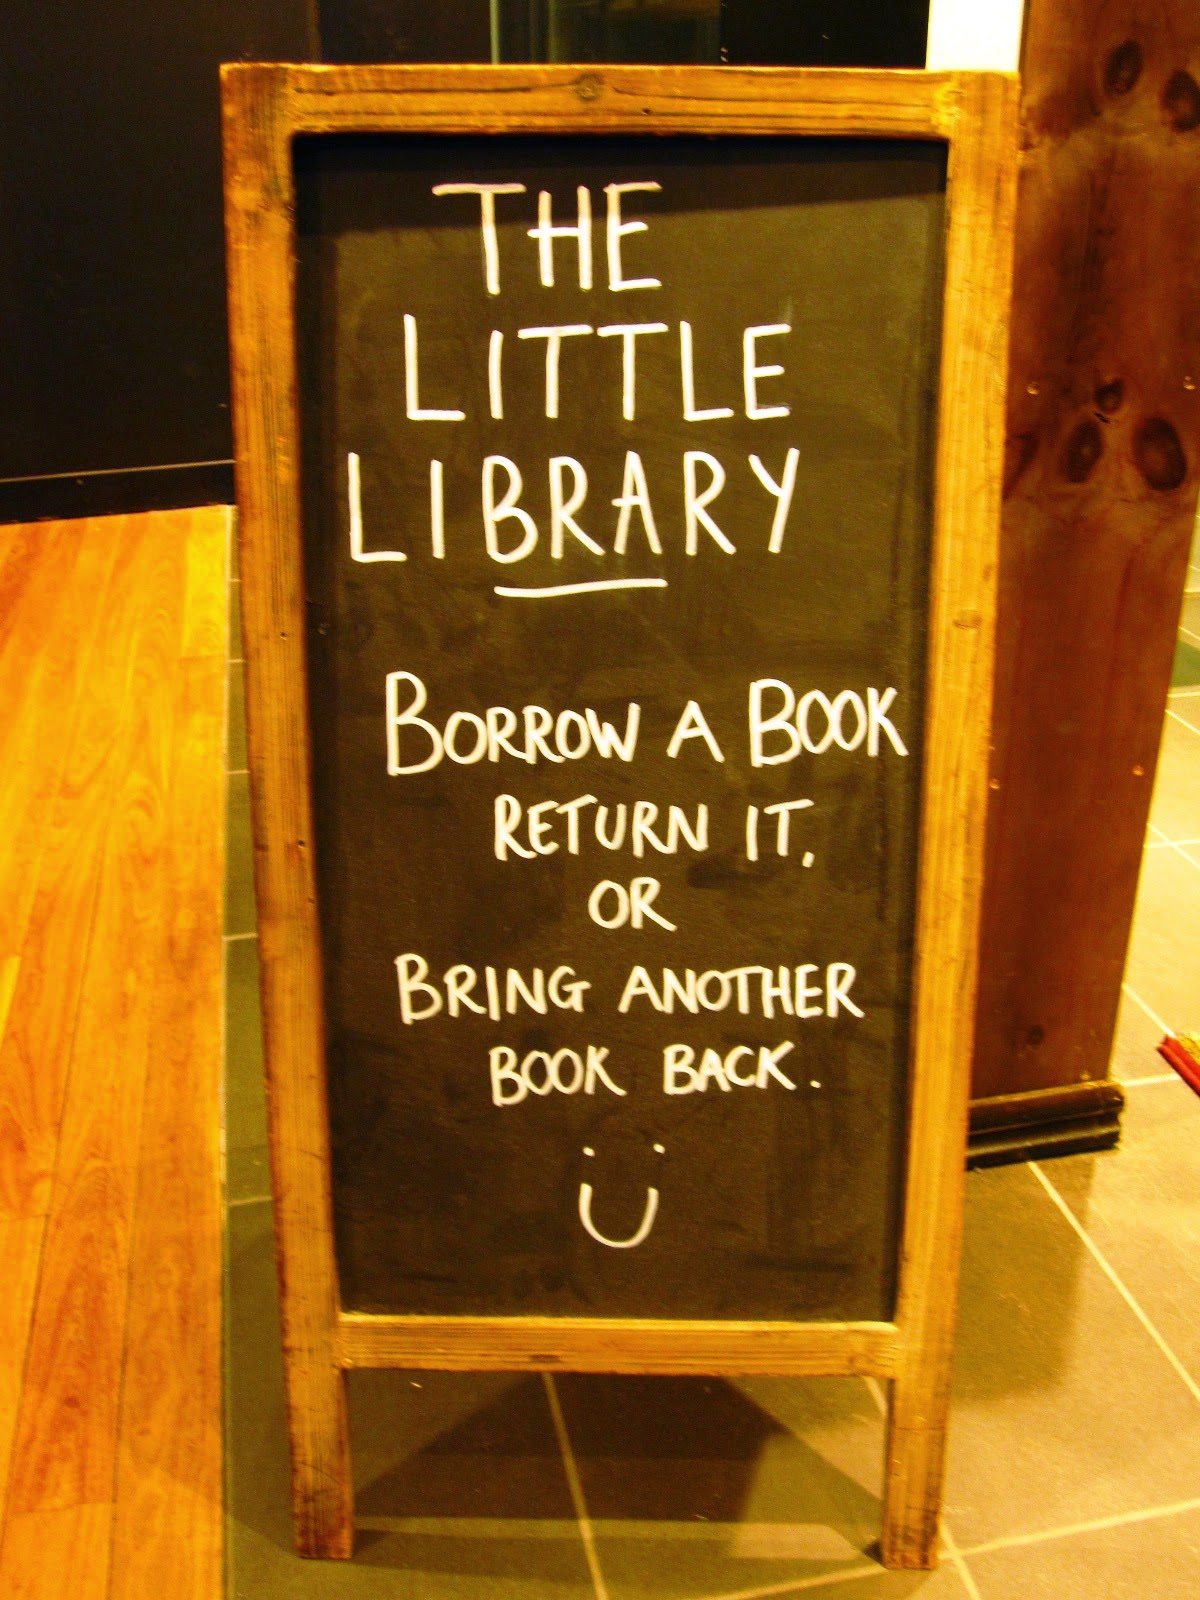 The Little Library in Melbourne Central: blackboard instruction sign saying 'Borrow a book return it. Or bring another book back.'